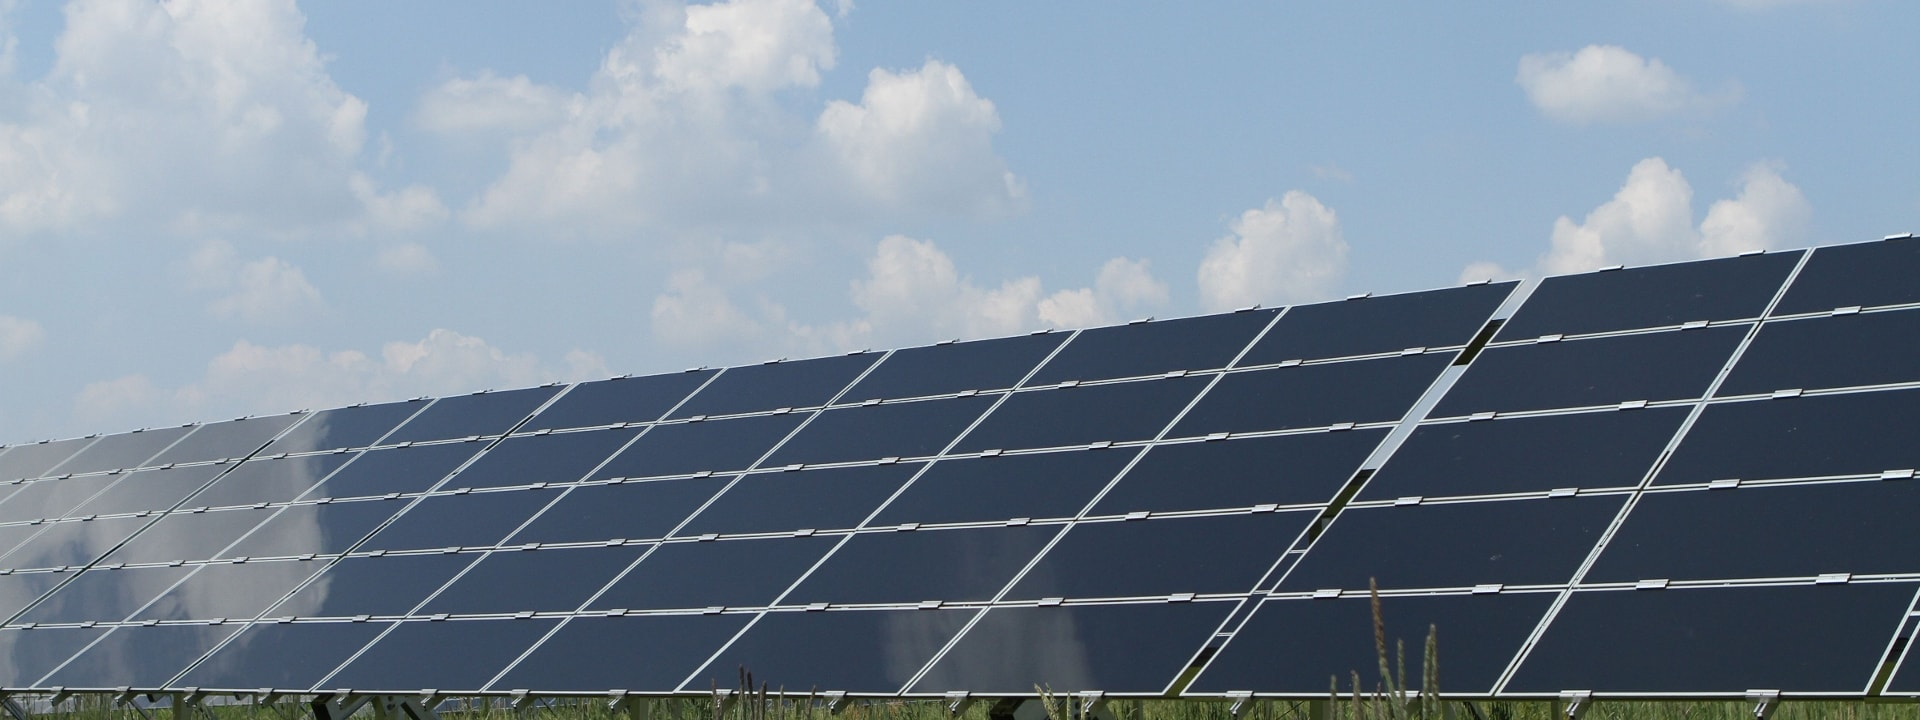 Photovoltaic system on the field